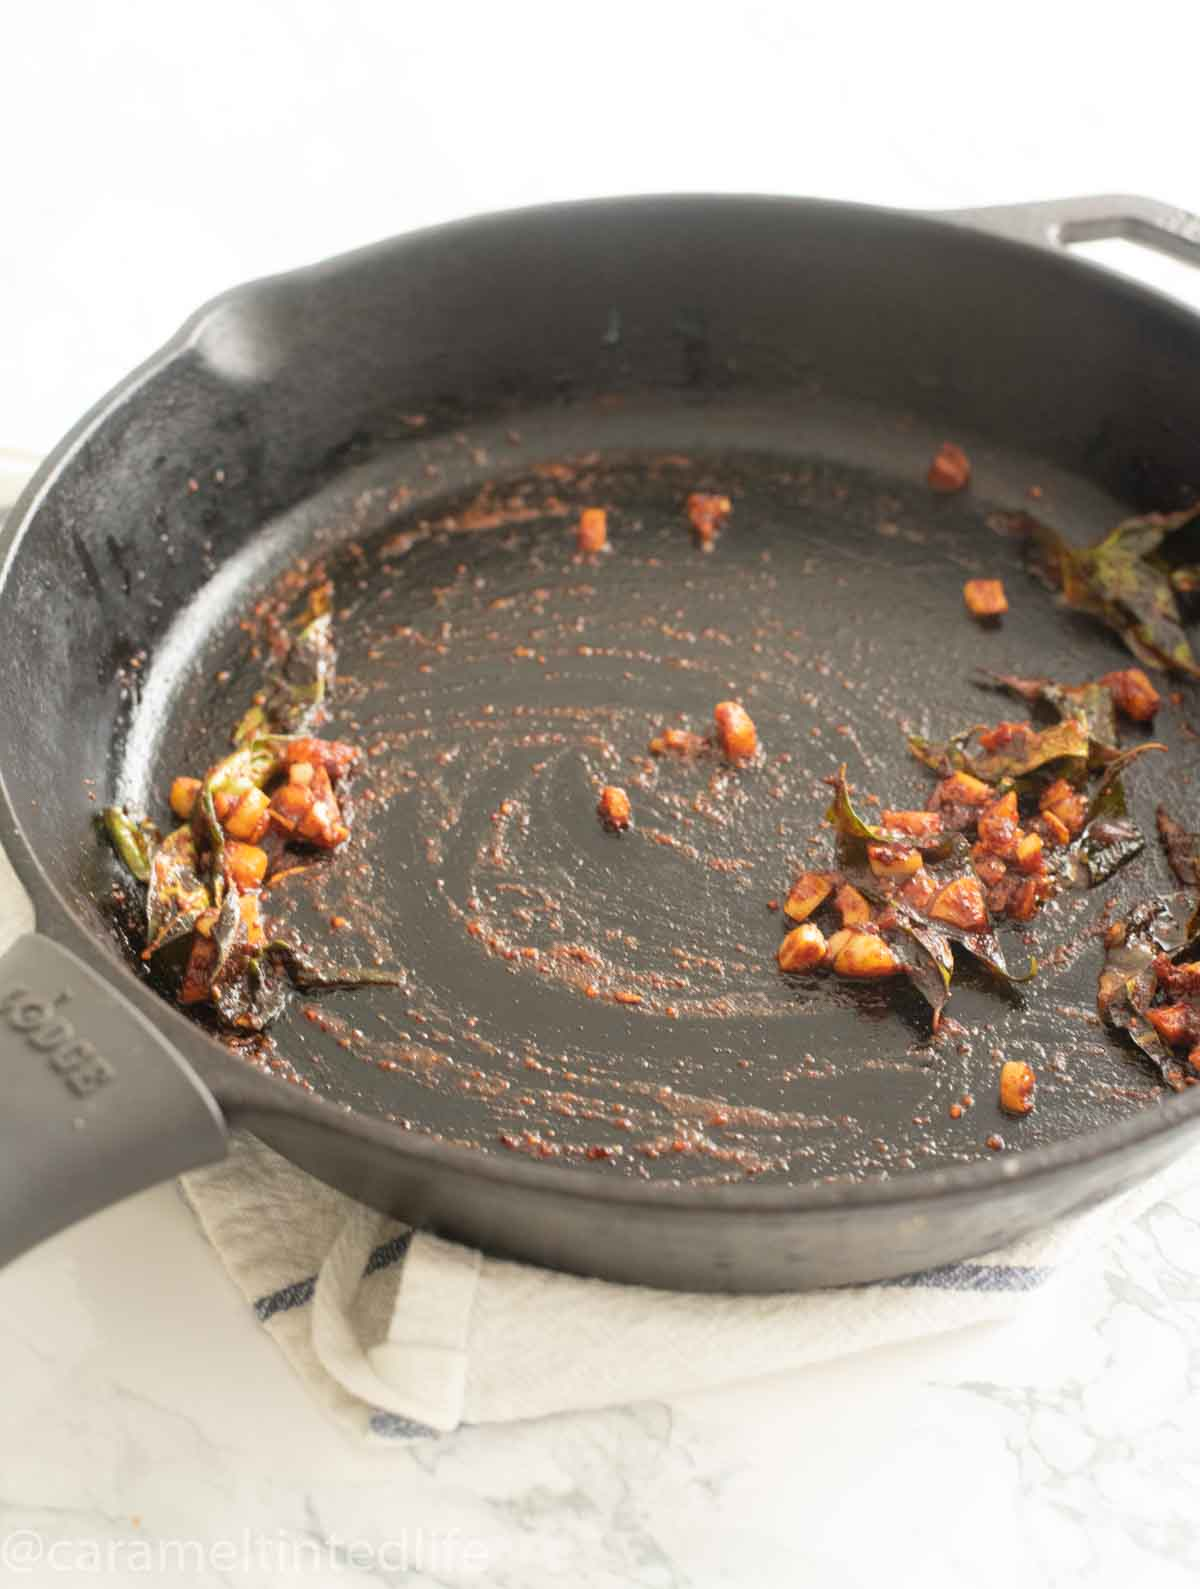 chili, garlic and curry leaves in a cast iron pan